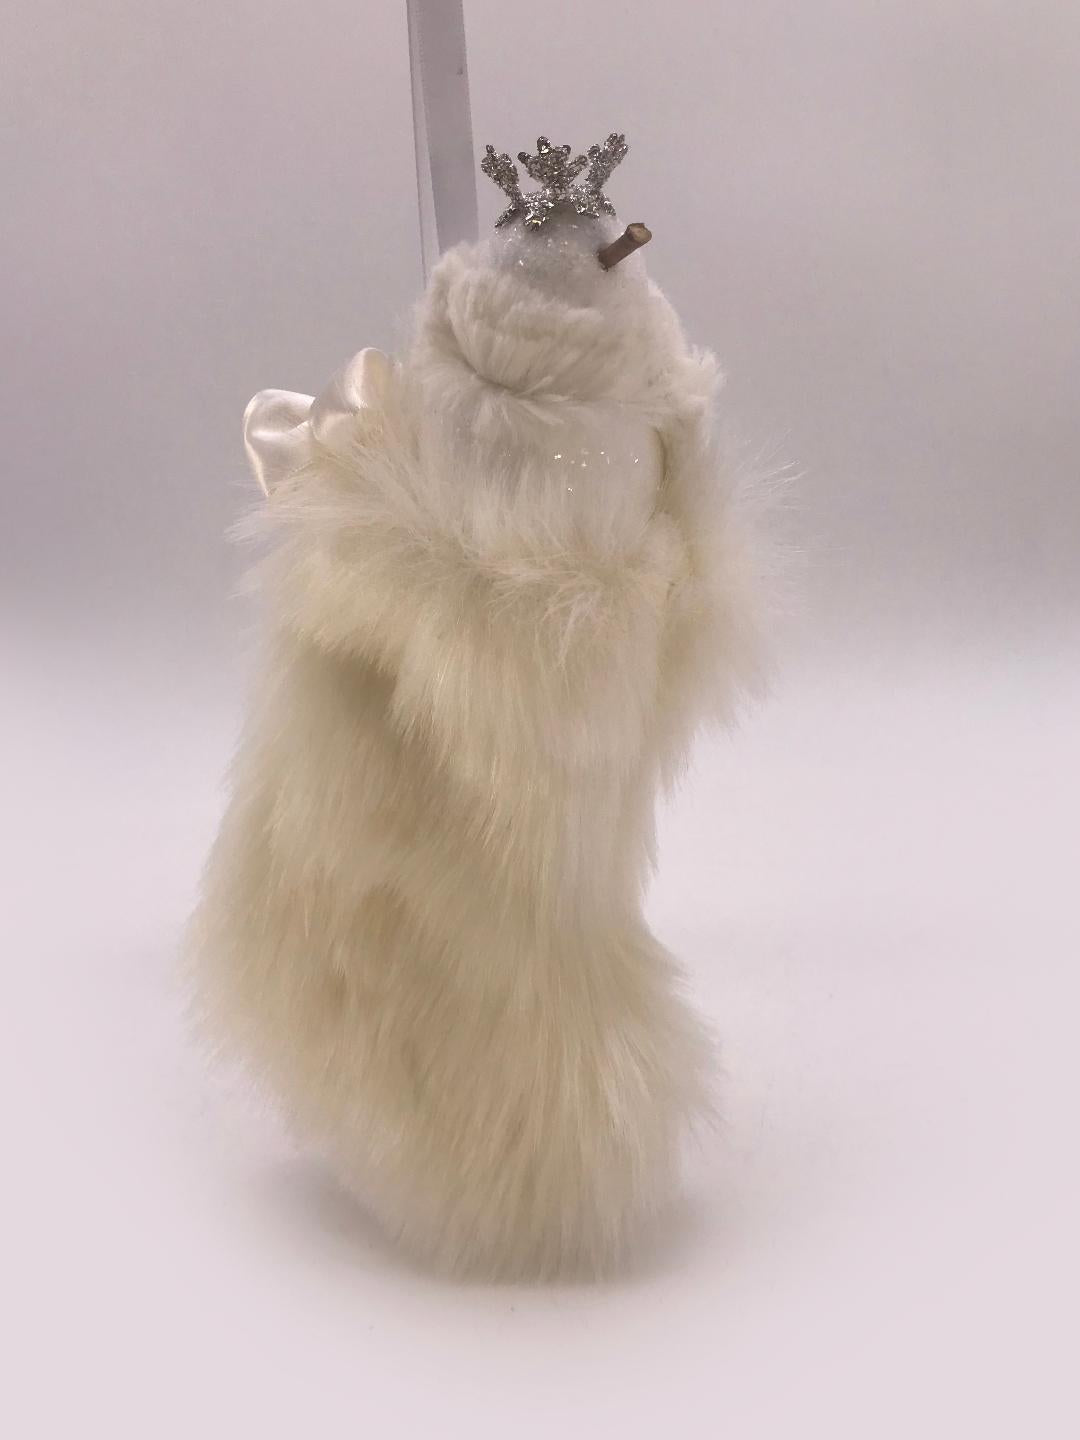 Stocking with Snowman Ornament - Cream Fur